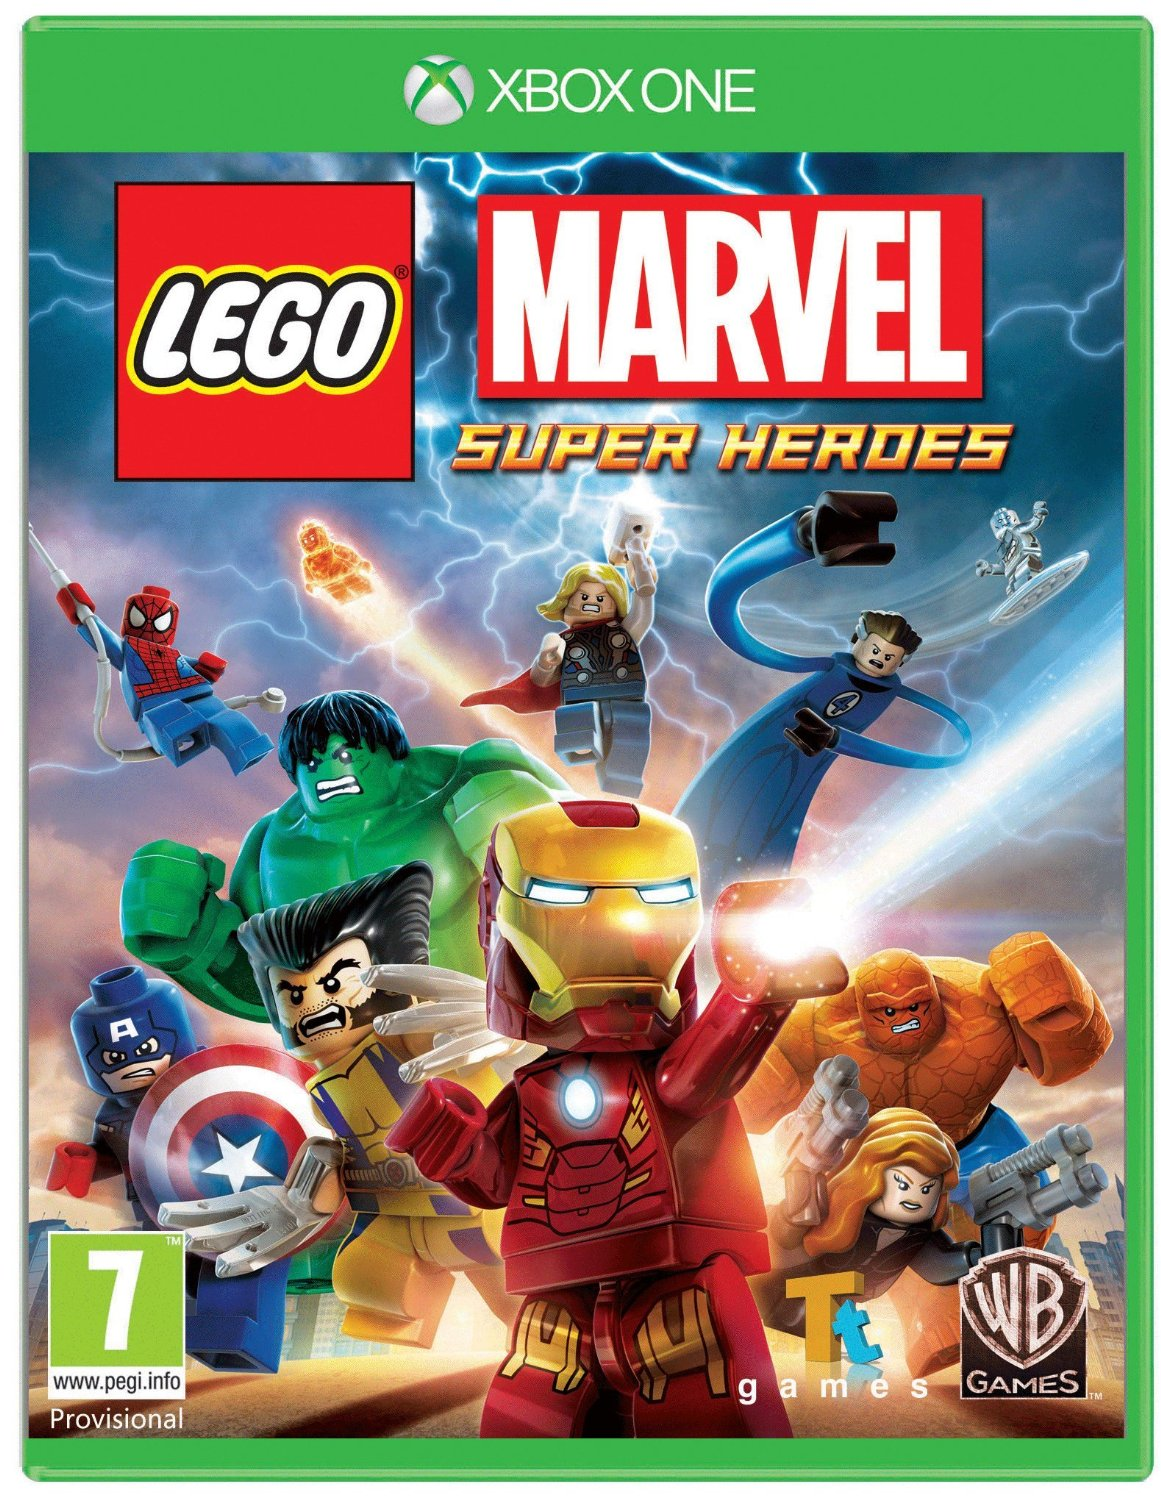 XBOX ONE Lego Marvel Super Heroes (Лего Марвел Супер Герои) б/у